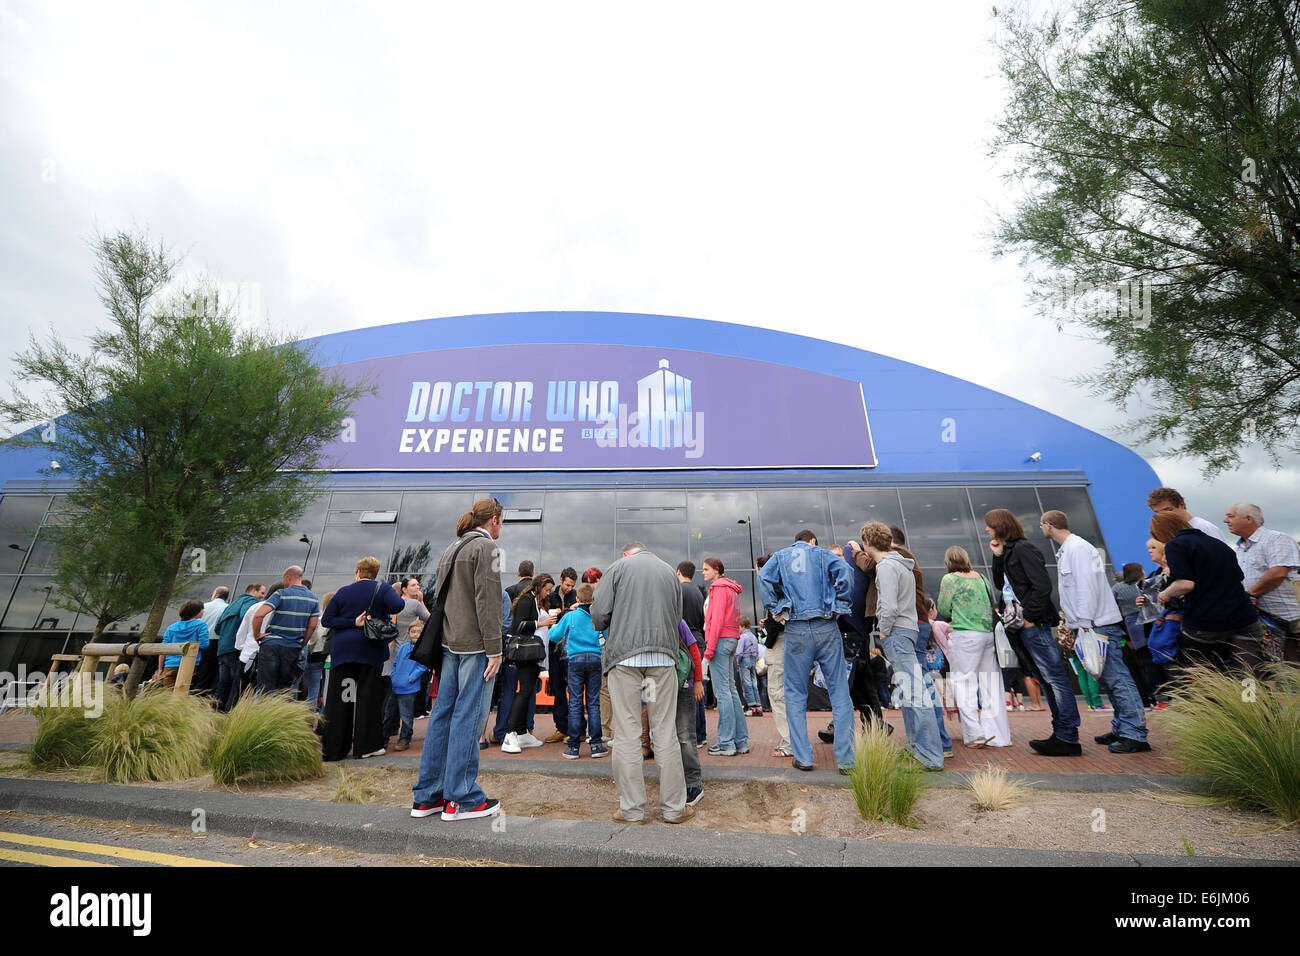 The Doctor Who Experience in Cardiff, Wales. - Stock Image